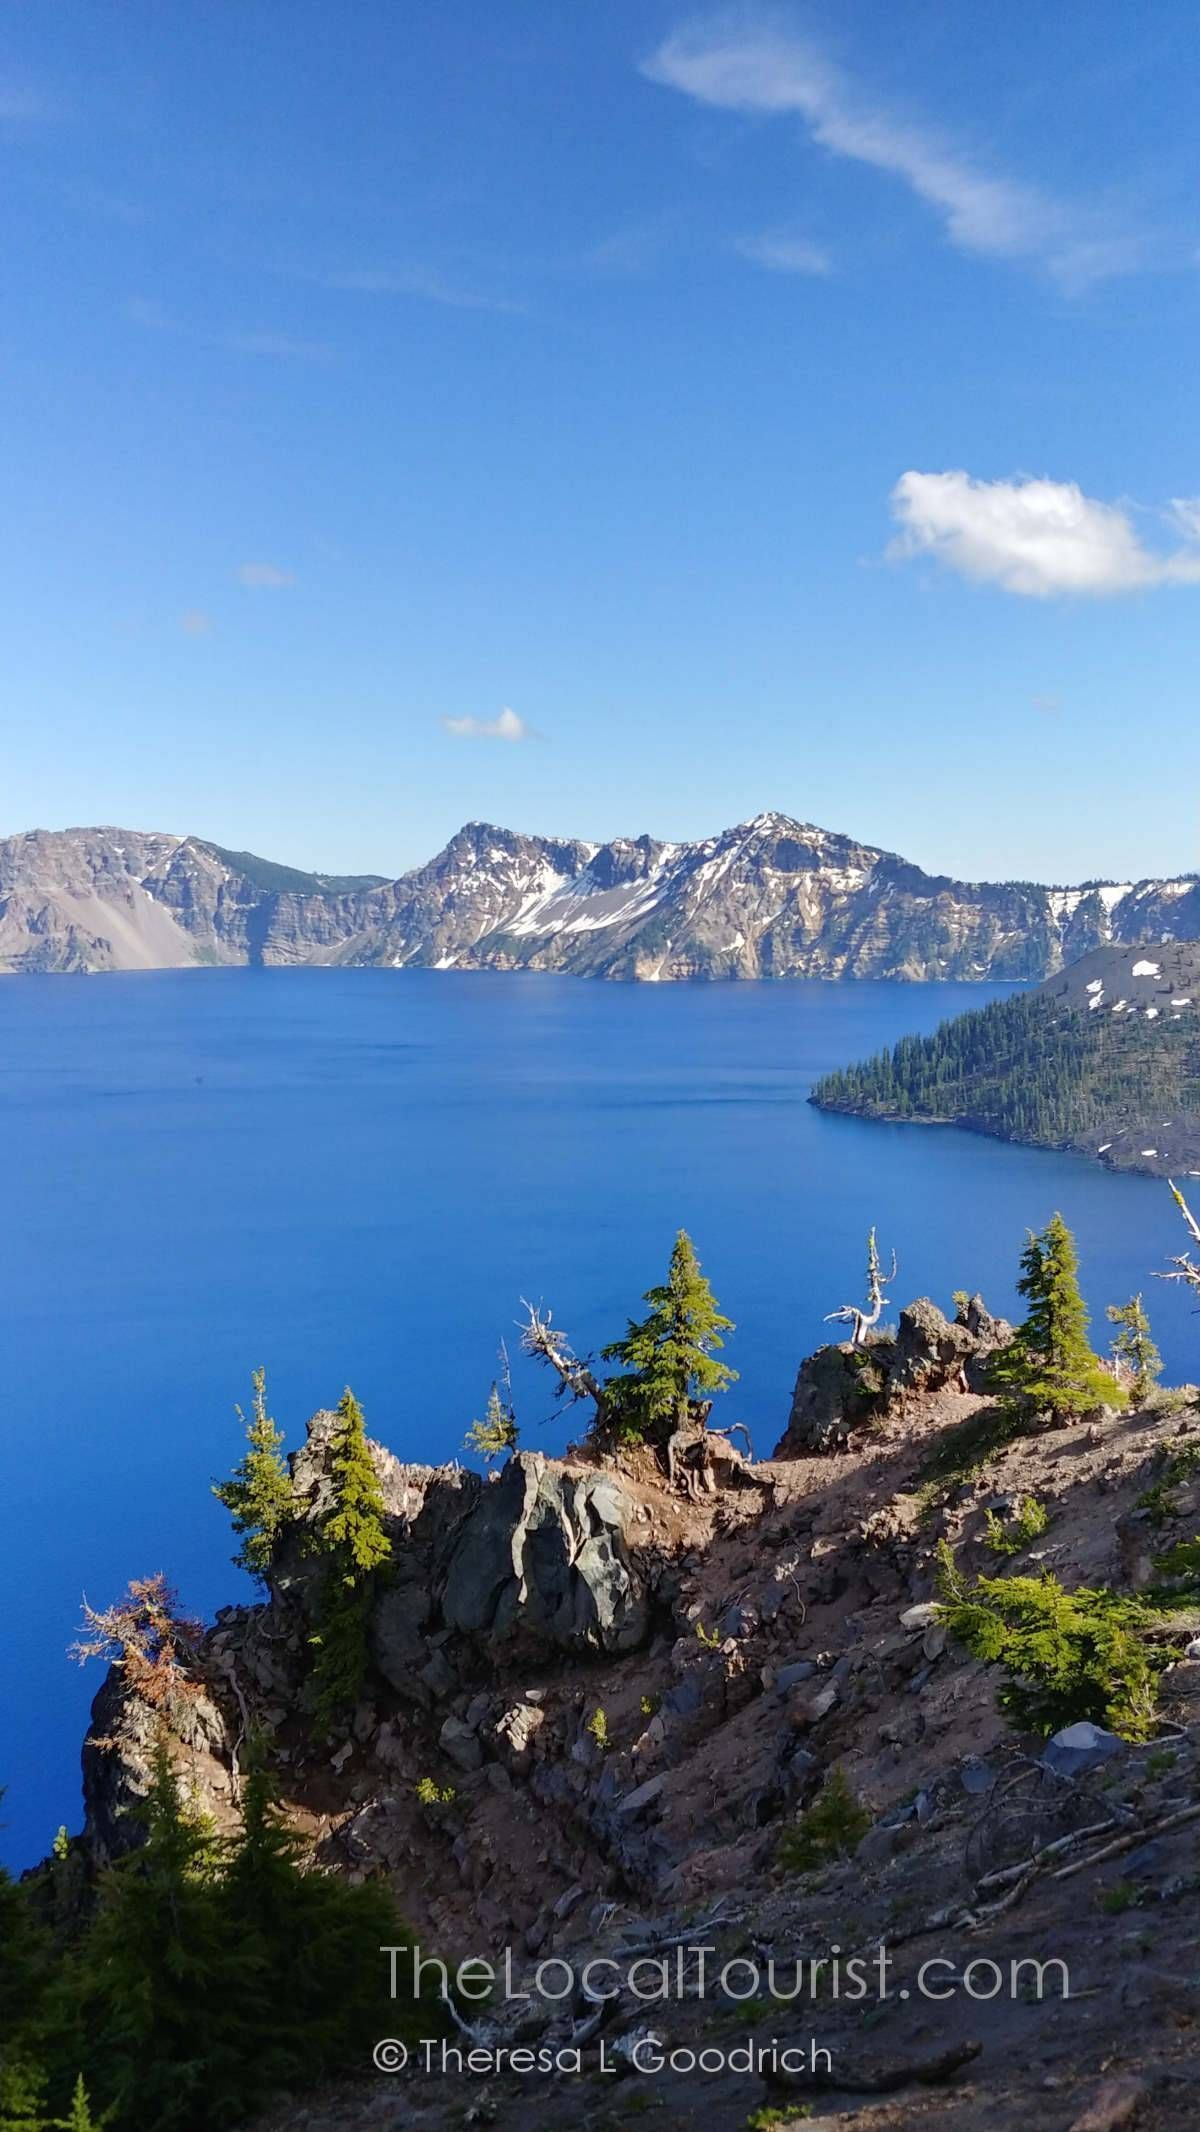 The Stunning, Cerulean Crater Lake National Park #craterlakeoregon The cerulean Crater Lake National Park will take your breath away. | Things to do in Oregon | Things to do near Bend Oregon | National Park Service #craterlakenationalpark The Stunning, Cerulean Crater Lake National Park #craterlakeoregon The cerulean Crater Lake National Park will take your breath away. | Things to do in Oregon | Things to do near Bend Oregon | National Park Service #craterlakenationalpark The Stunning, Cerulean #craterlakeoregon